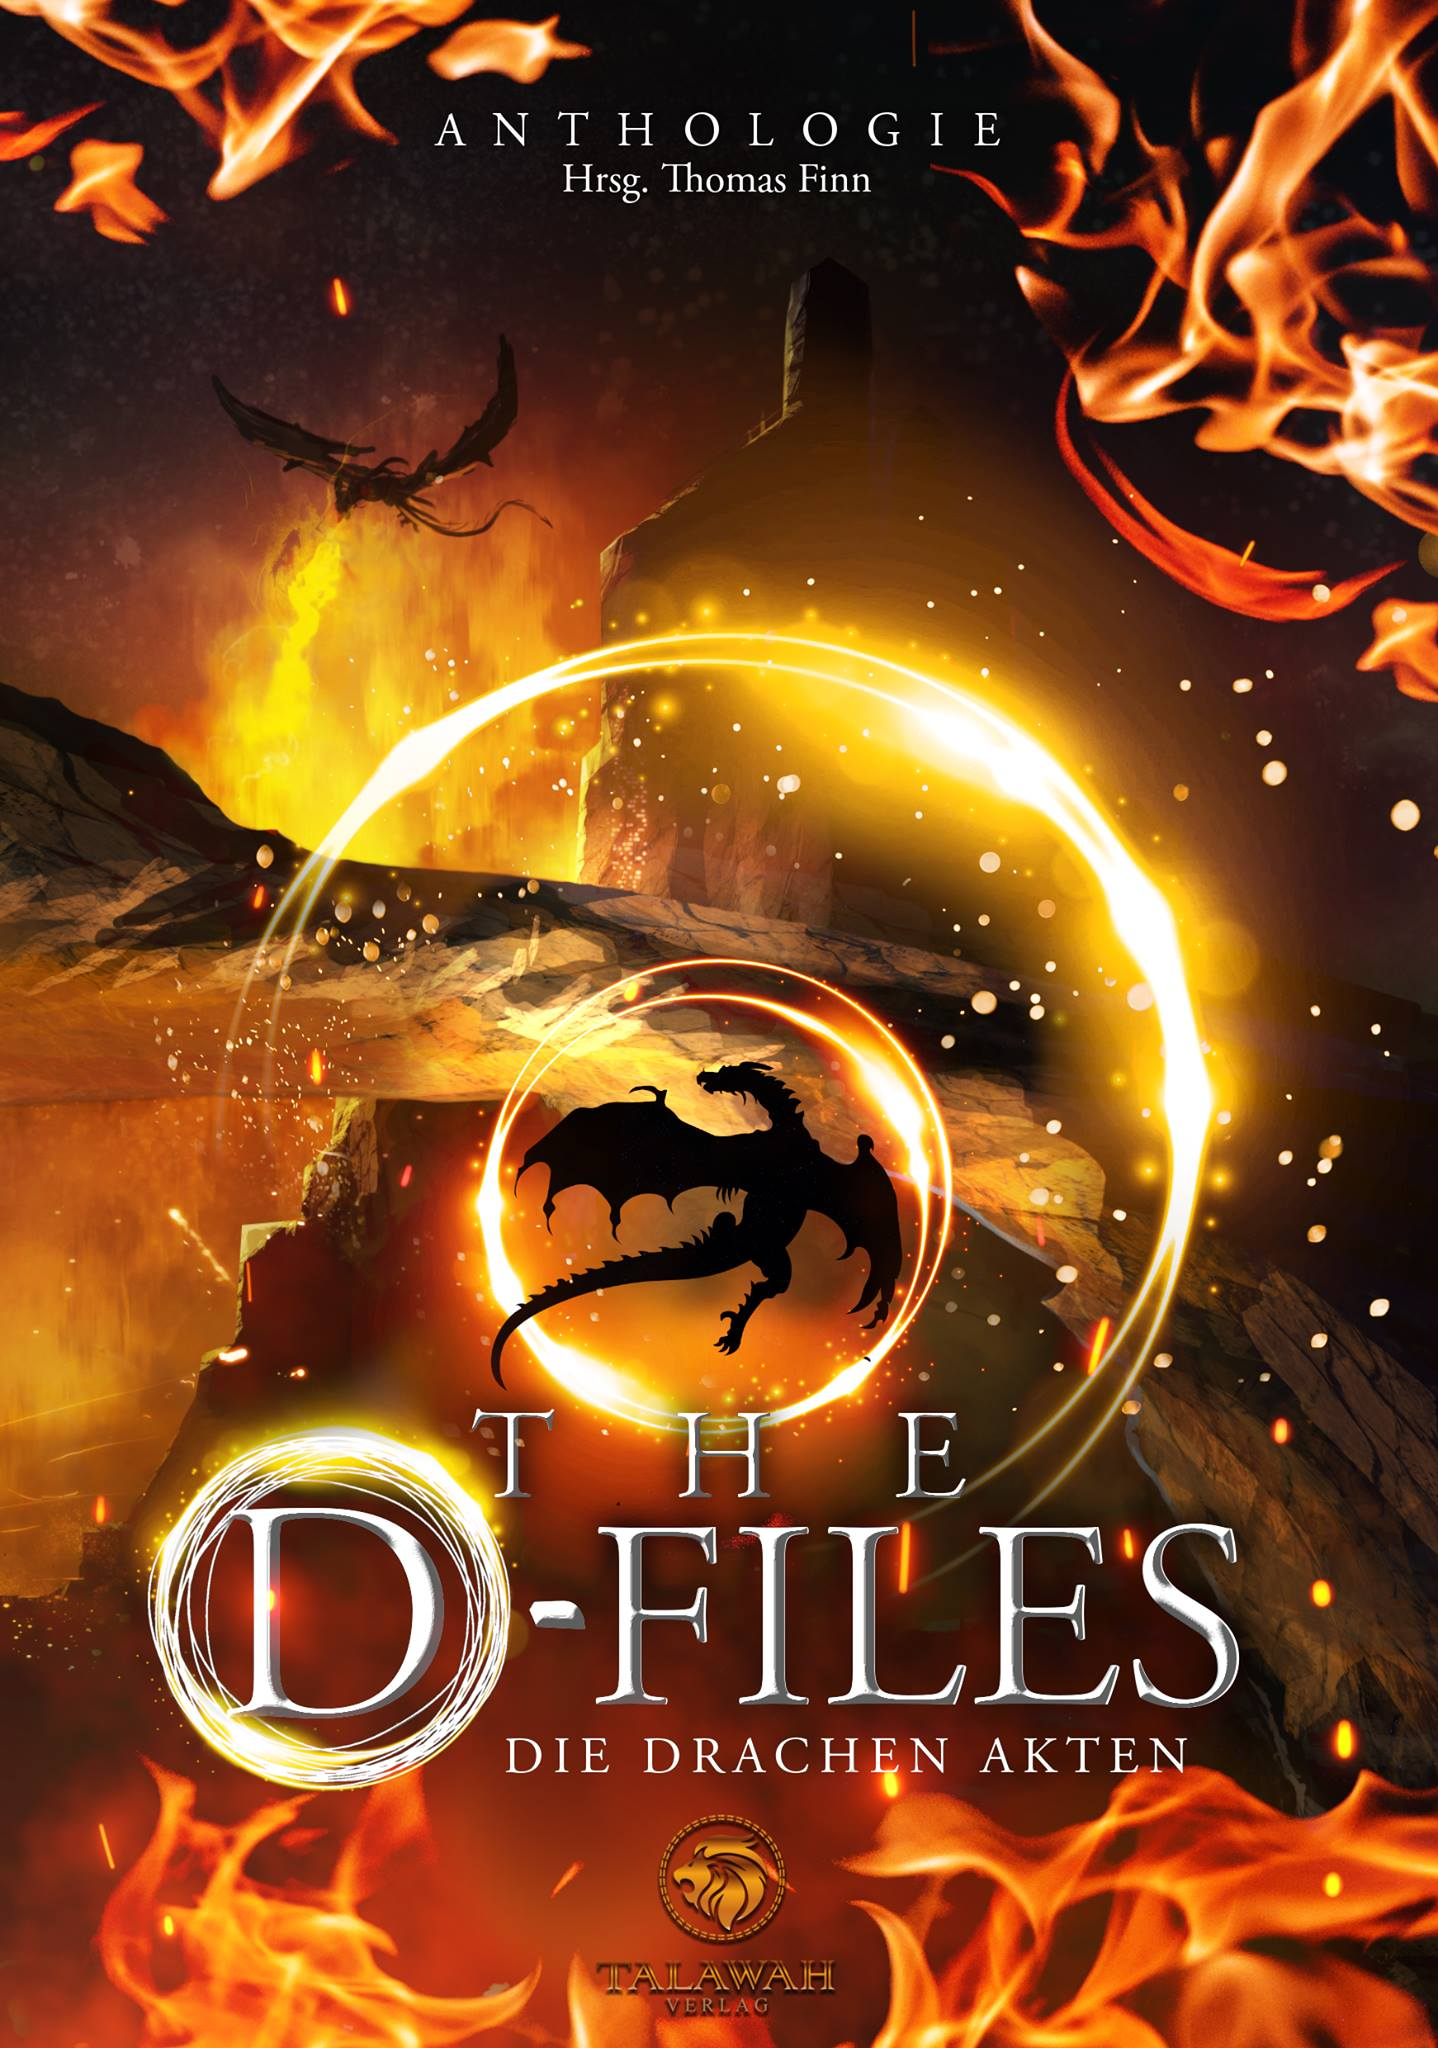 D-Files _ Cover